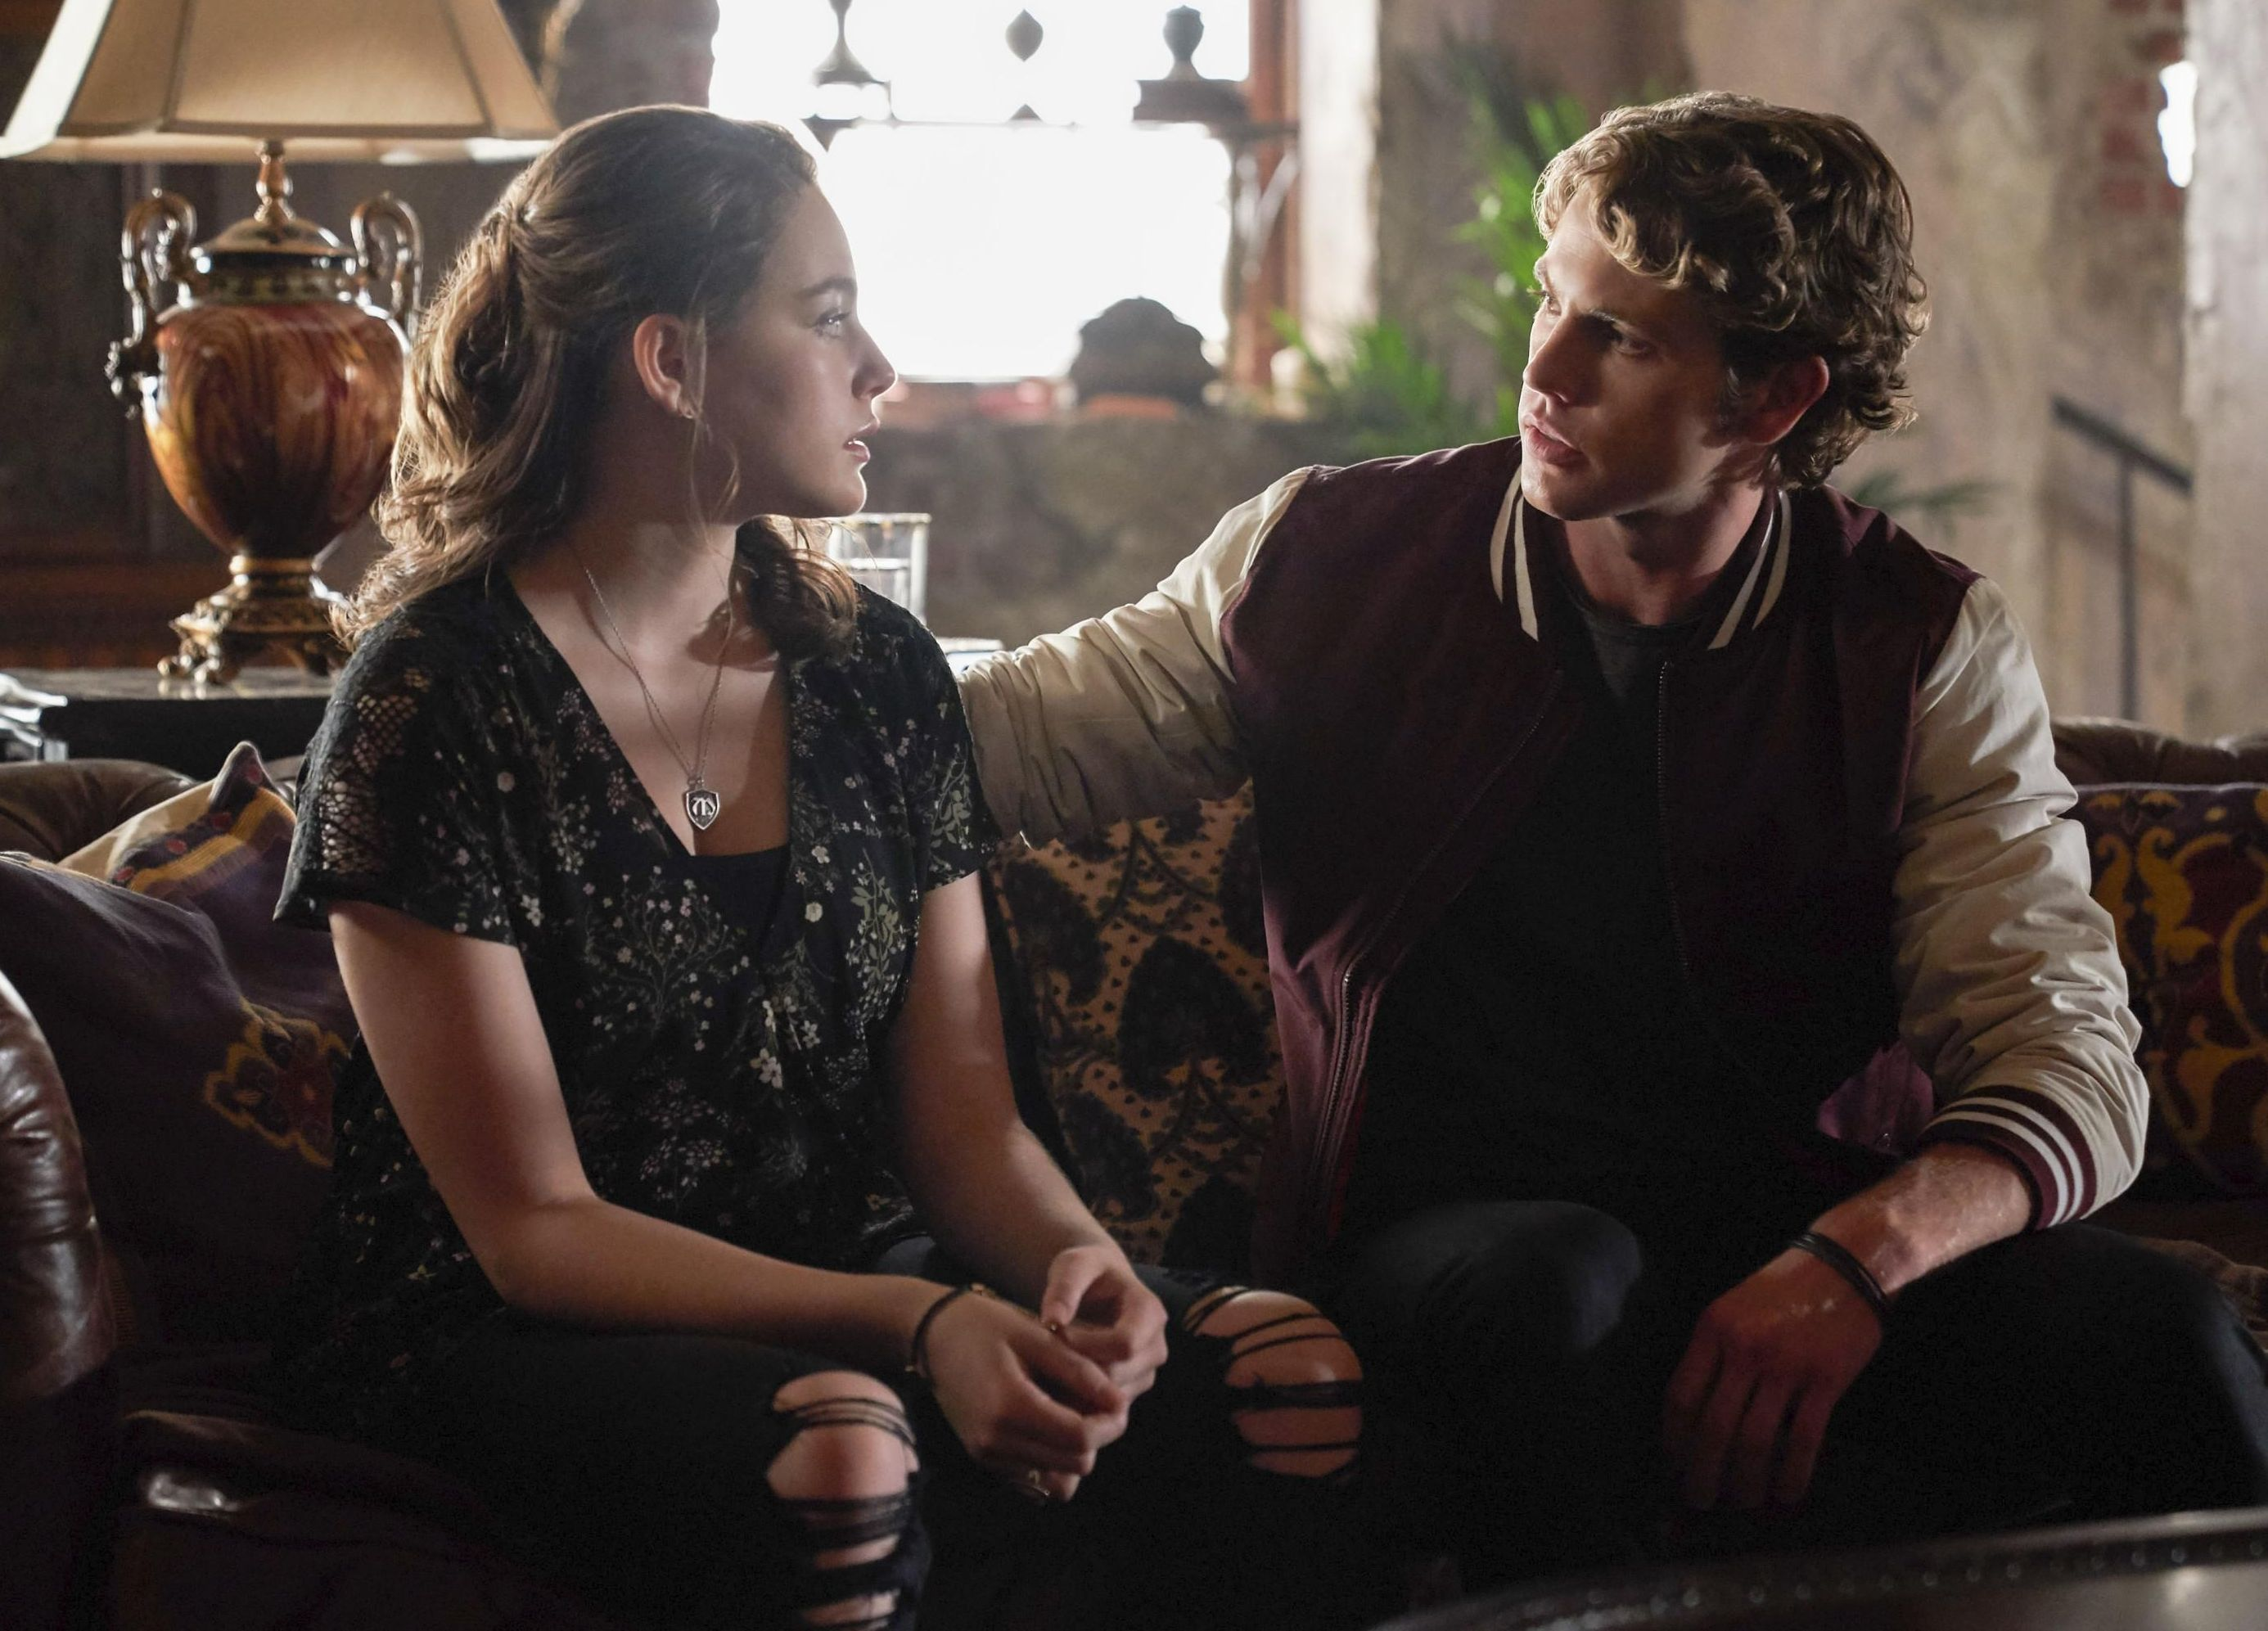 5*02 - One Wrong Turn On Bourbon (25/04/2018) The-originals-5x02-hope-photo